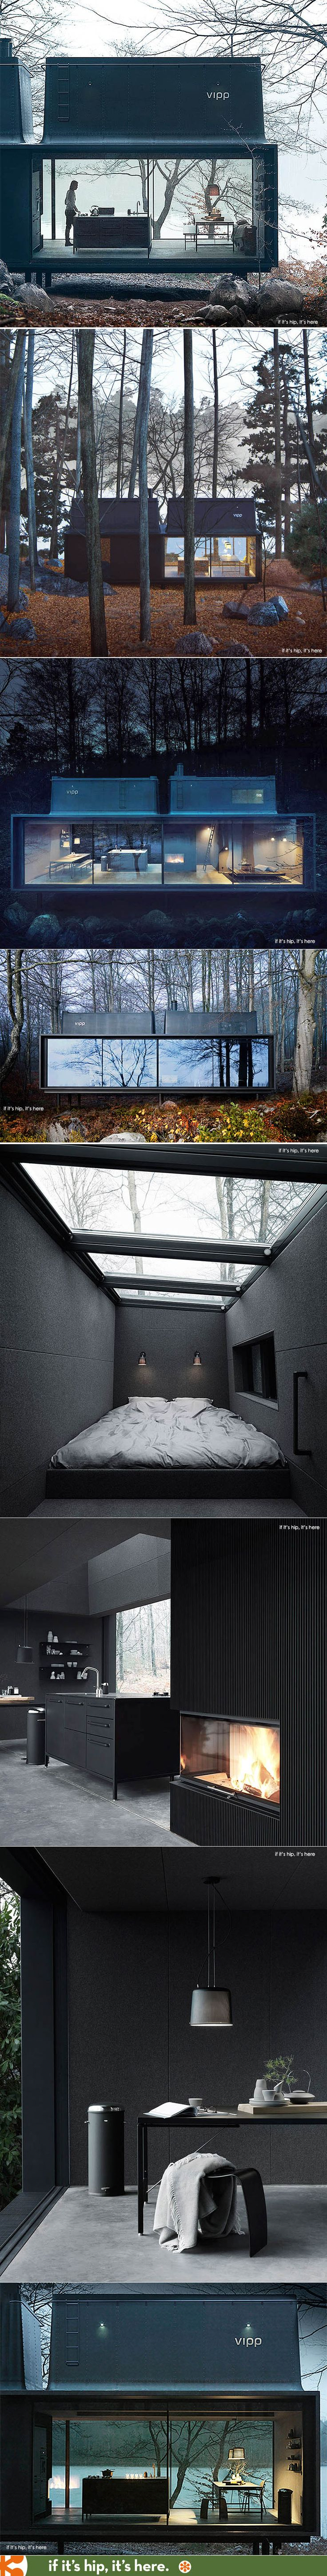 Visions of the Future // The Vipp Shelter is a prefab structure loaded with Vipp products. | http://www.ifitshipitshere.com/the-vipp-shelter/